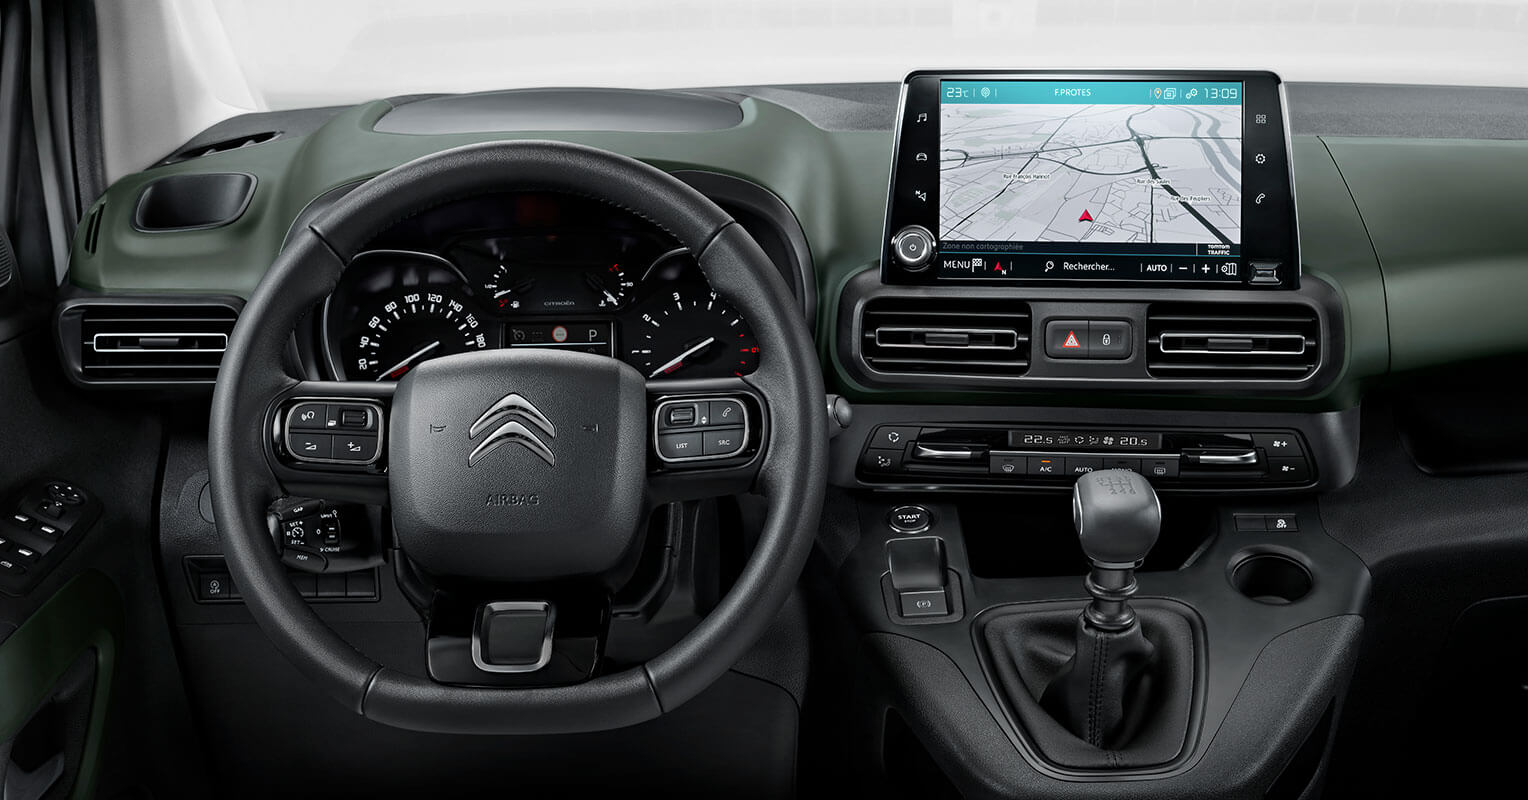 Citroën Berlingo 2018 interior